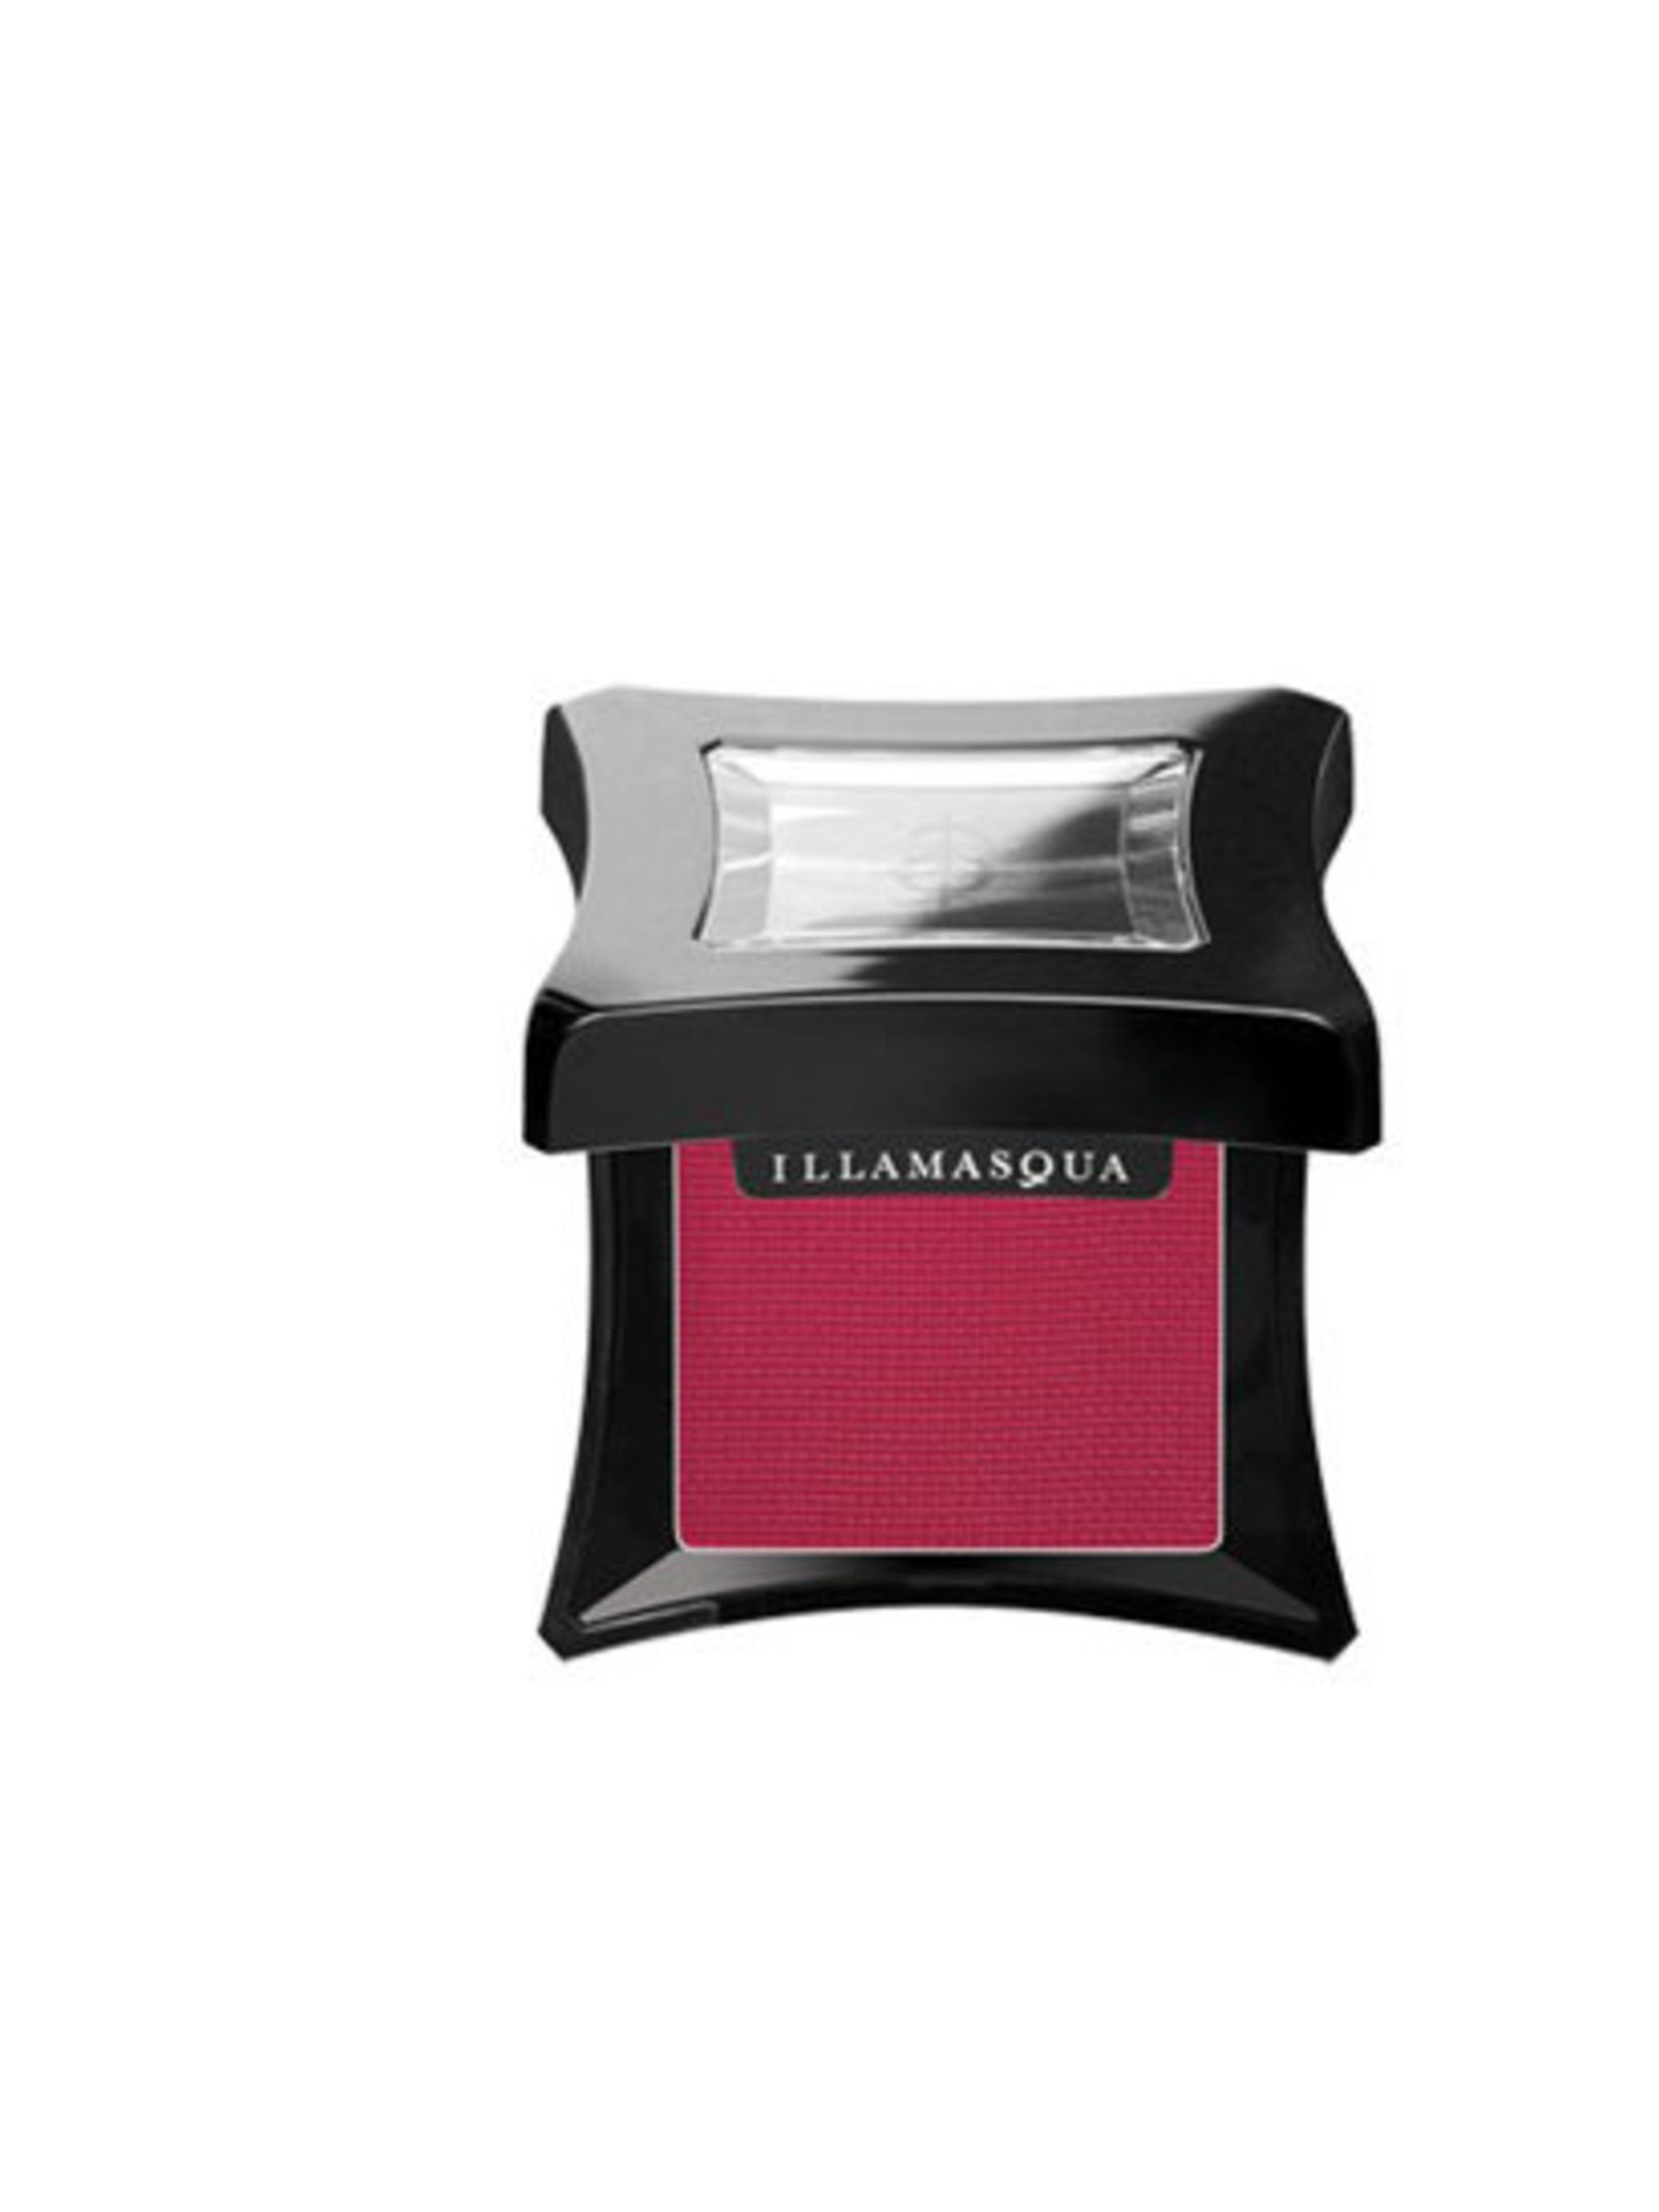 """<p>With <a href=""""http://www.illamasqua.com/shop/products/eyes/eye-shadows/powder-eye-shadows/daemon-powder-eye-shadow"""">Illamasqua</a> Powder Eye Shadow in Daemon, £15.50. And don't forget your black liquid liner...</p>"""